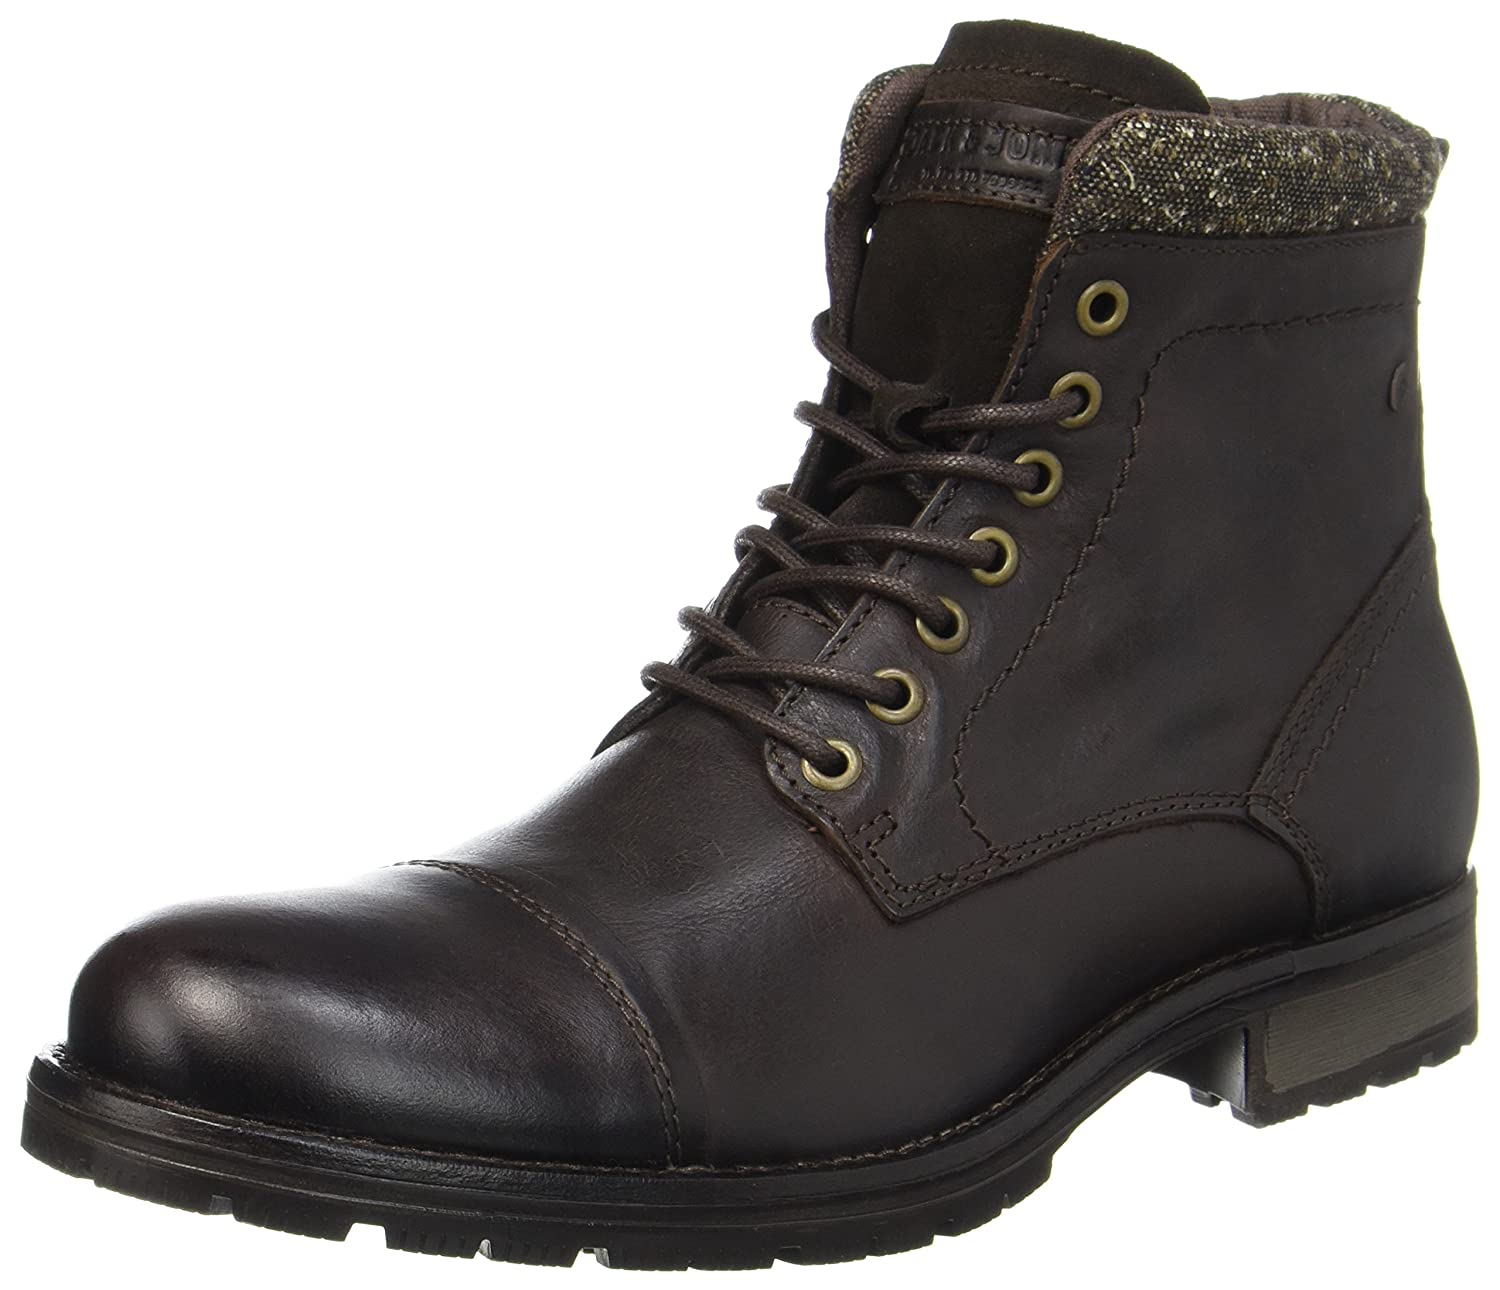 TALLA 44 EU. Jack & Jones Jfwmarly Leather Bison, Botas Clasicas para Hombre